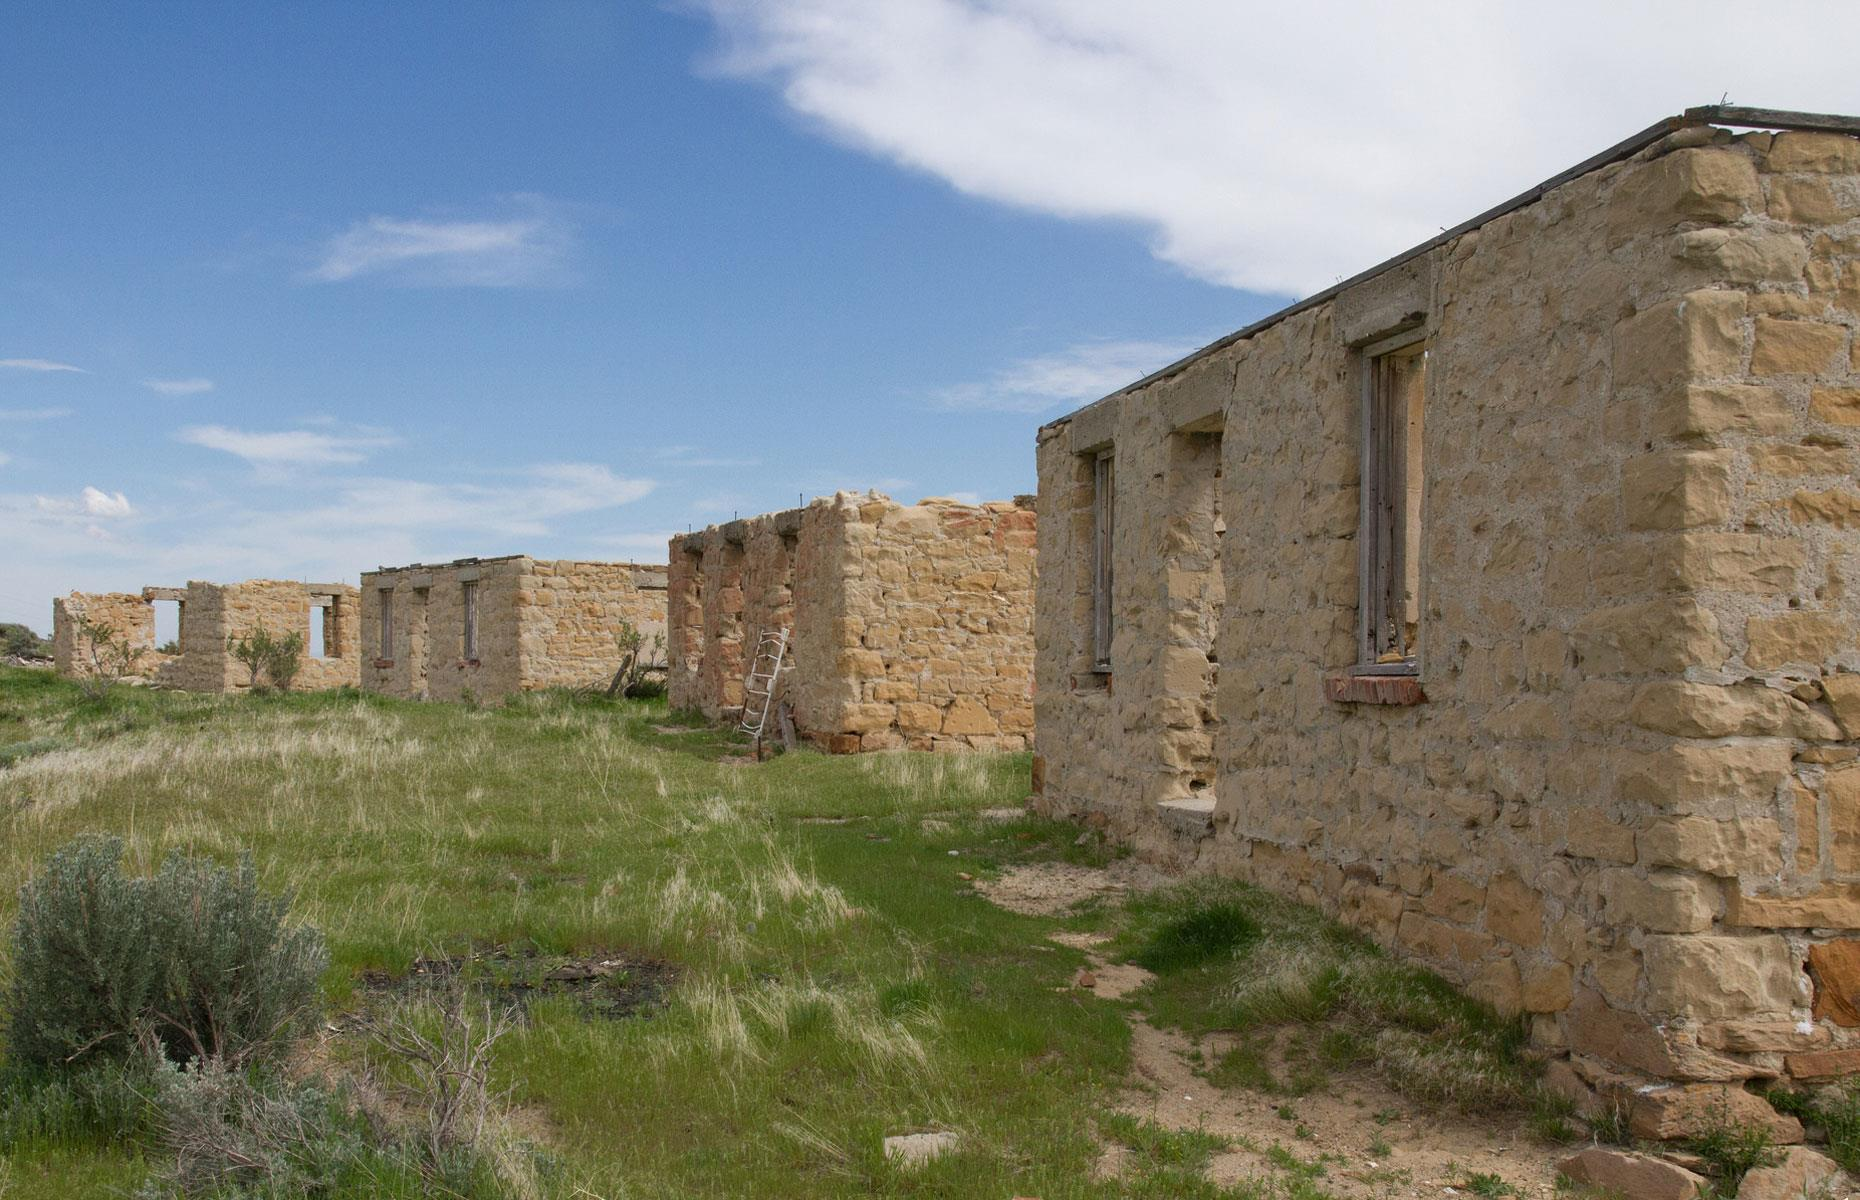 Slide 101 of 101: The ghost town stayed standing until 1971 when most of the buildings were razed to the ground. Only the ruins of the bulldozed town and its cemetery remain, and they make for a particularly bleak sight. Now discover someabandoned projects the US government spent billions of taxpayers' money on